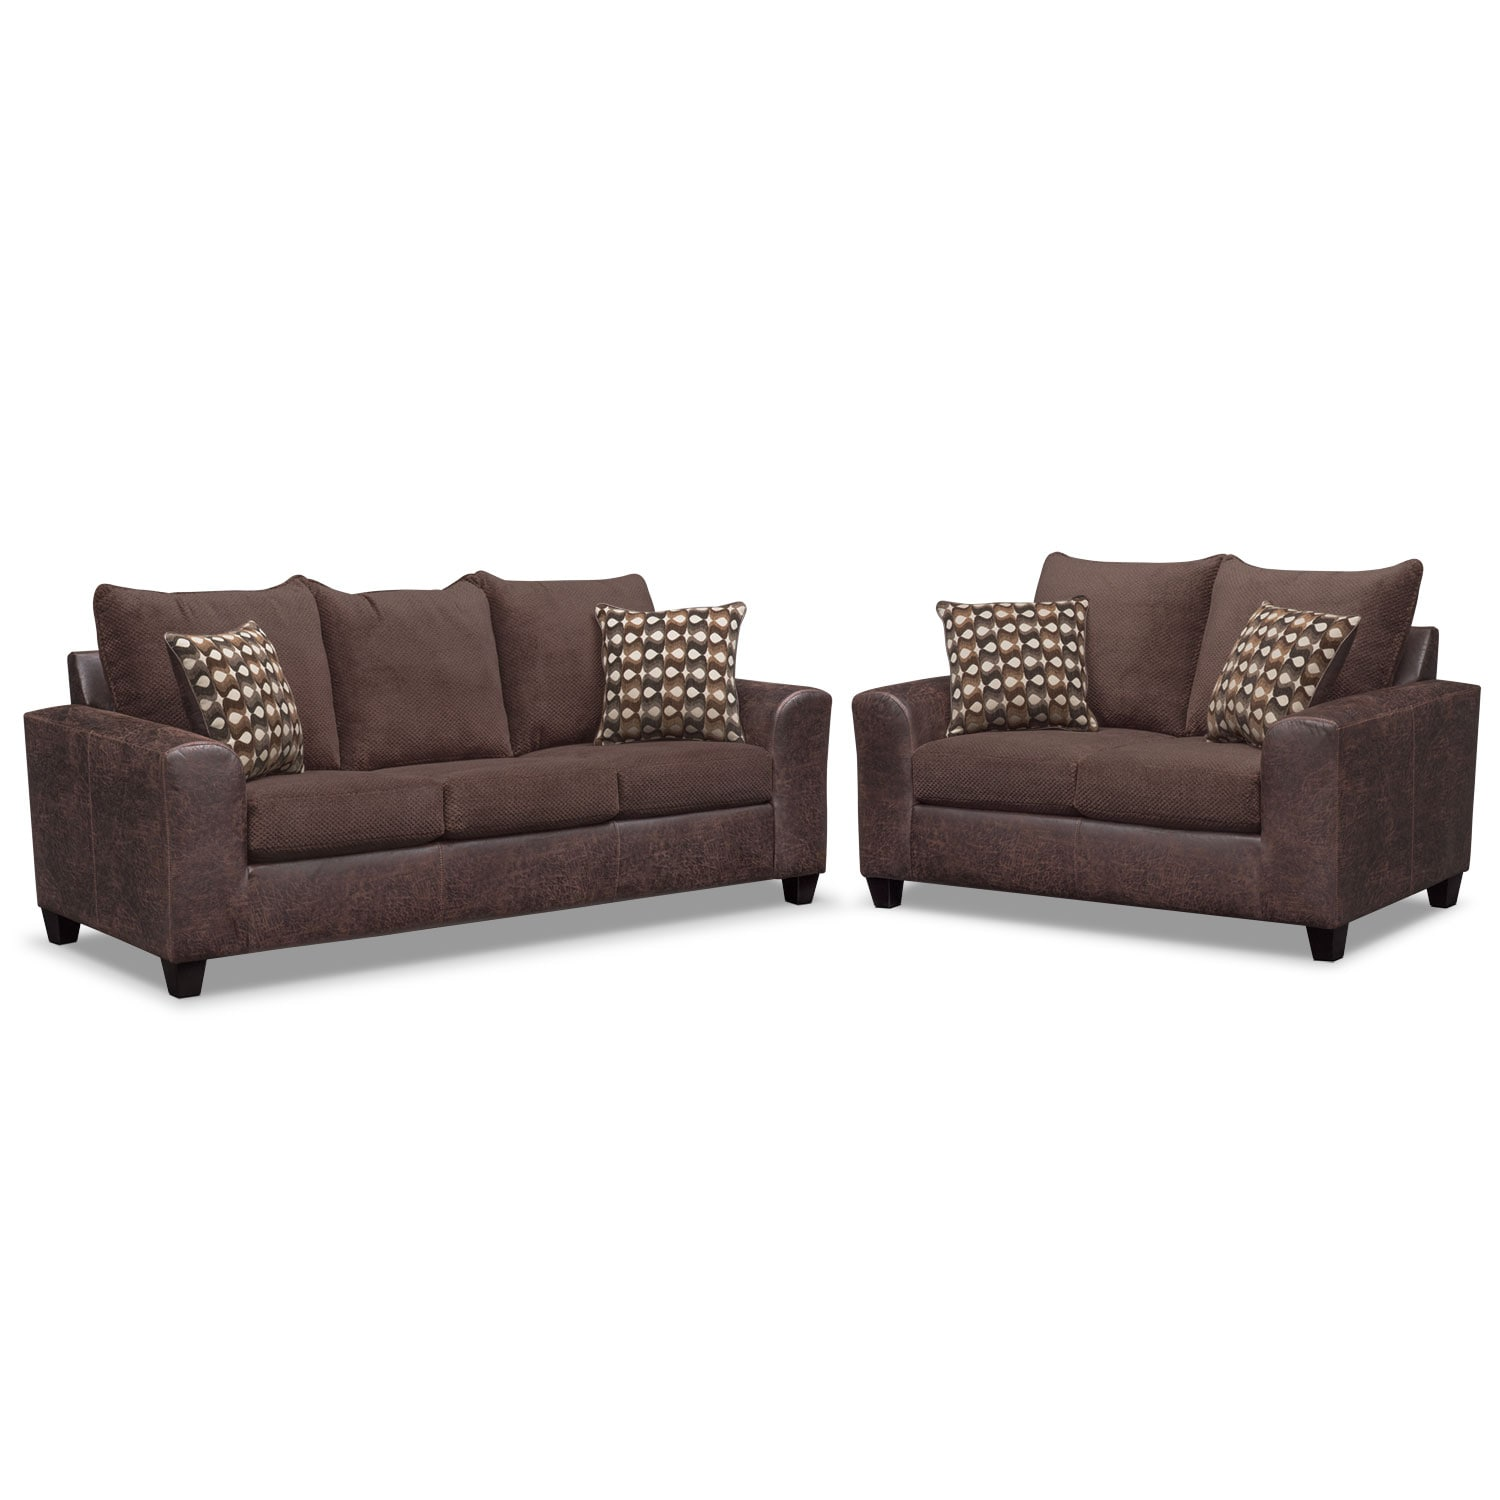 Brando Queen Memory Foam Sleeper Sofa And Loveseat Set Chocolate Value City Furniture